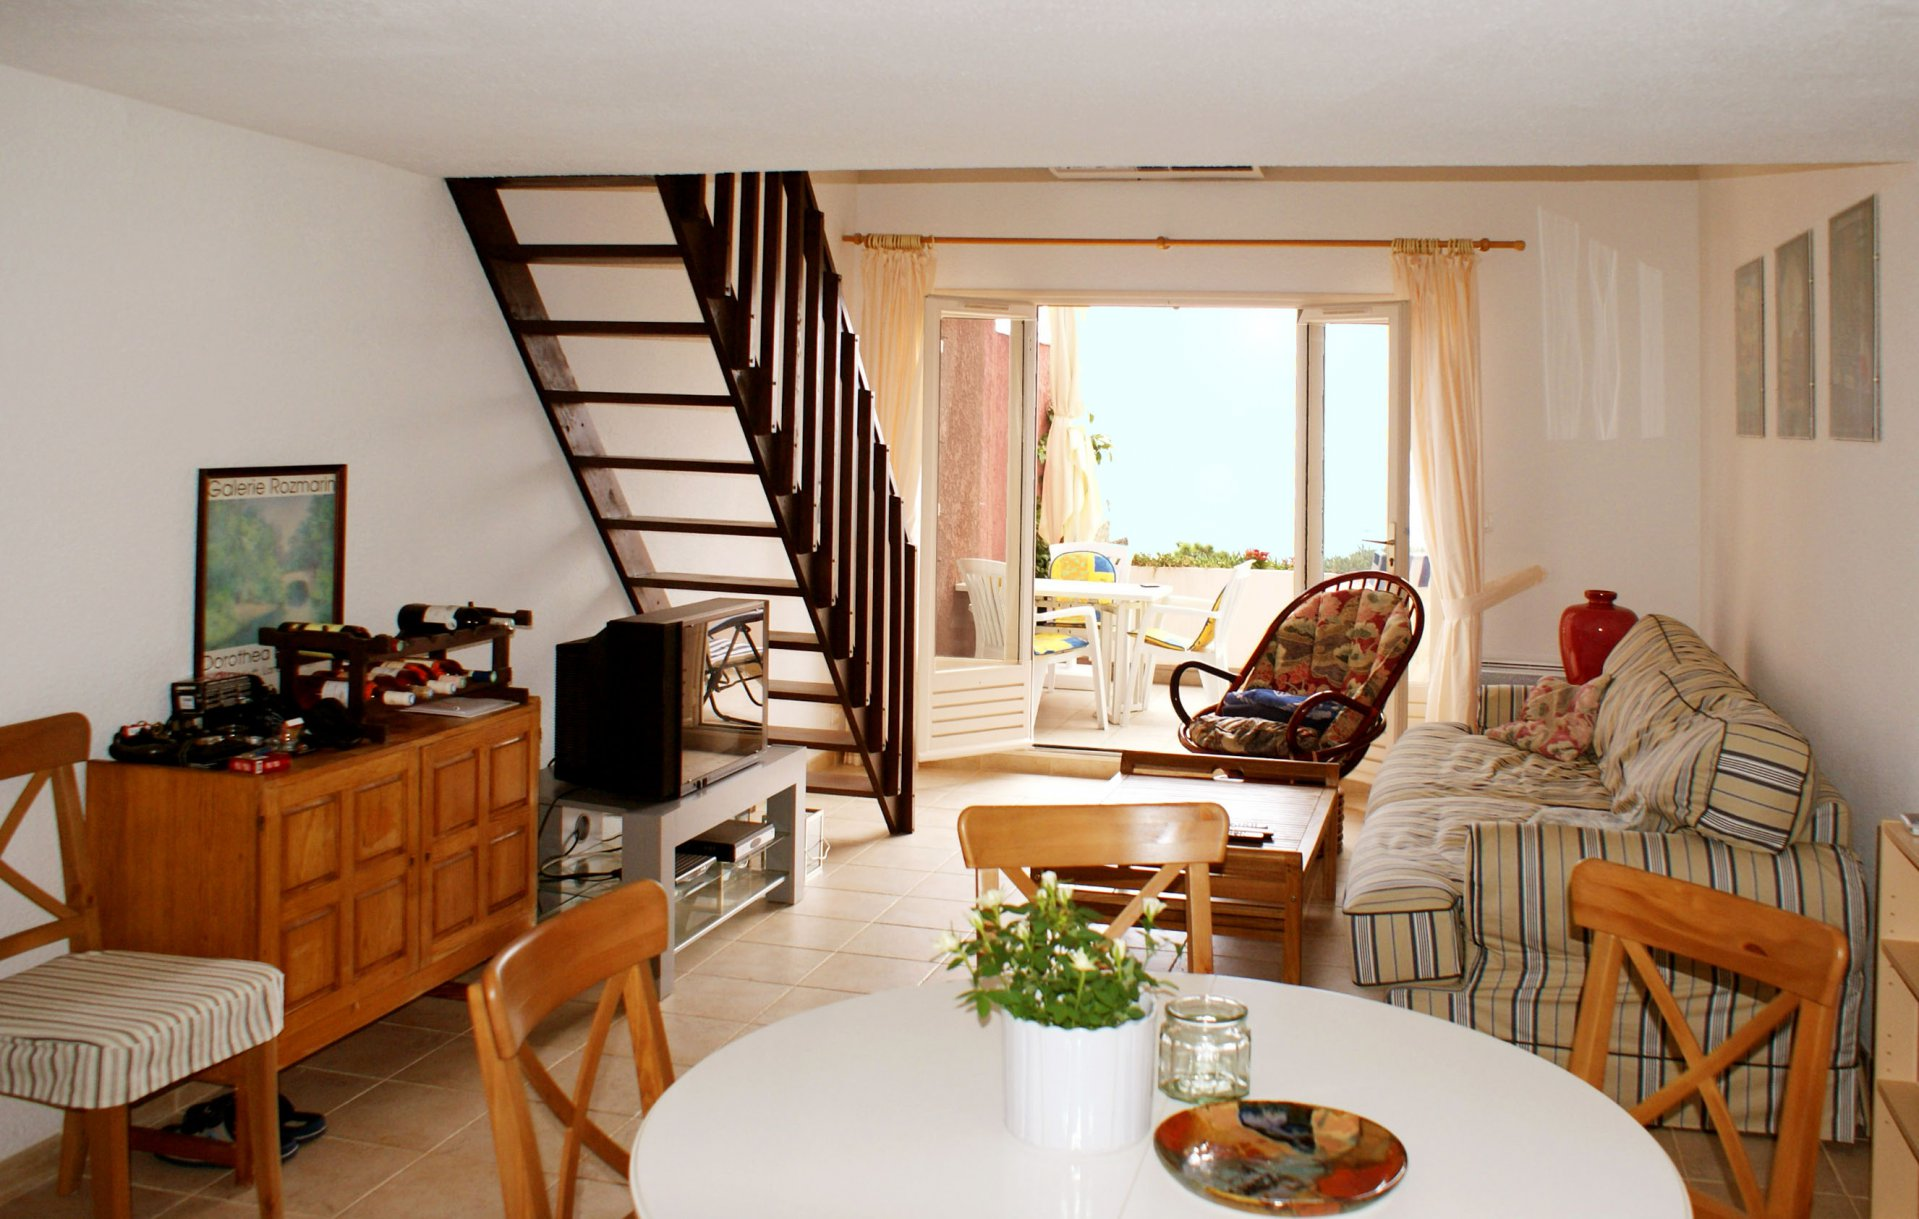 3 bed rooms apartment 6 sleeps) terrace, sea view * MM 03 *